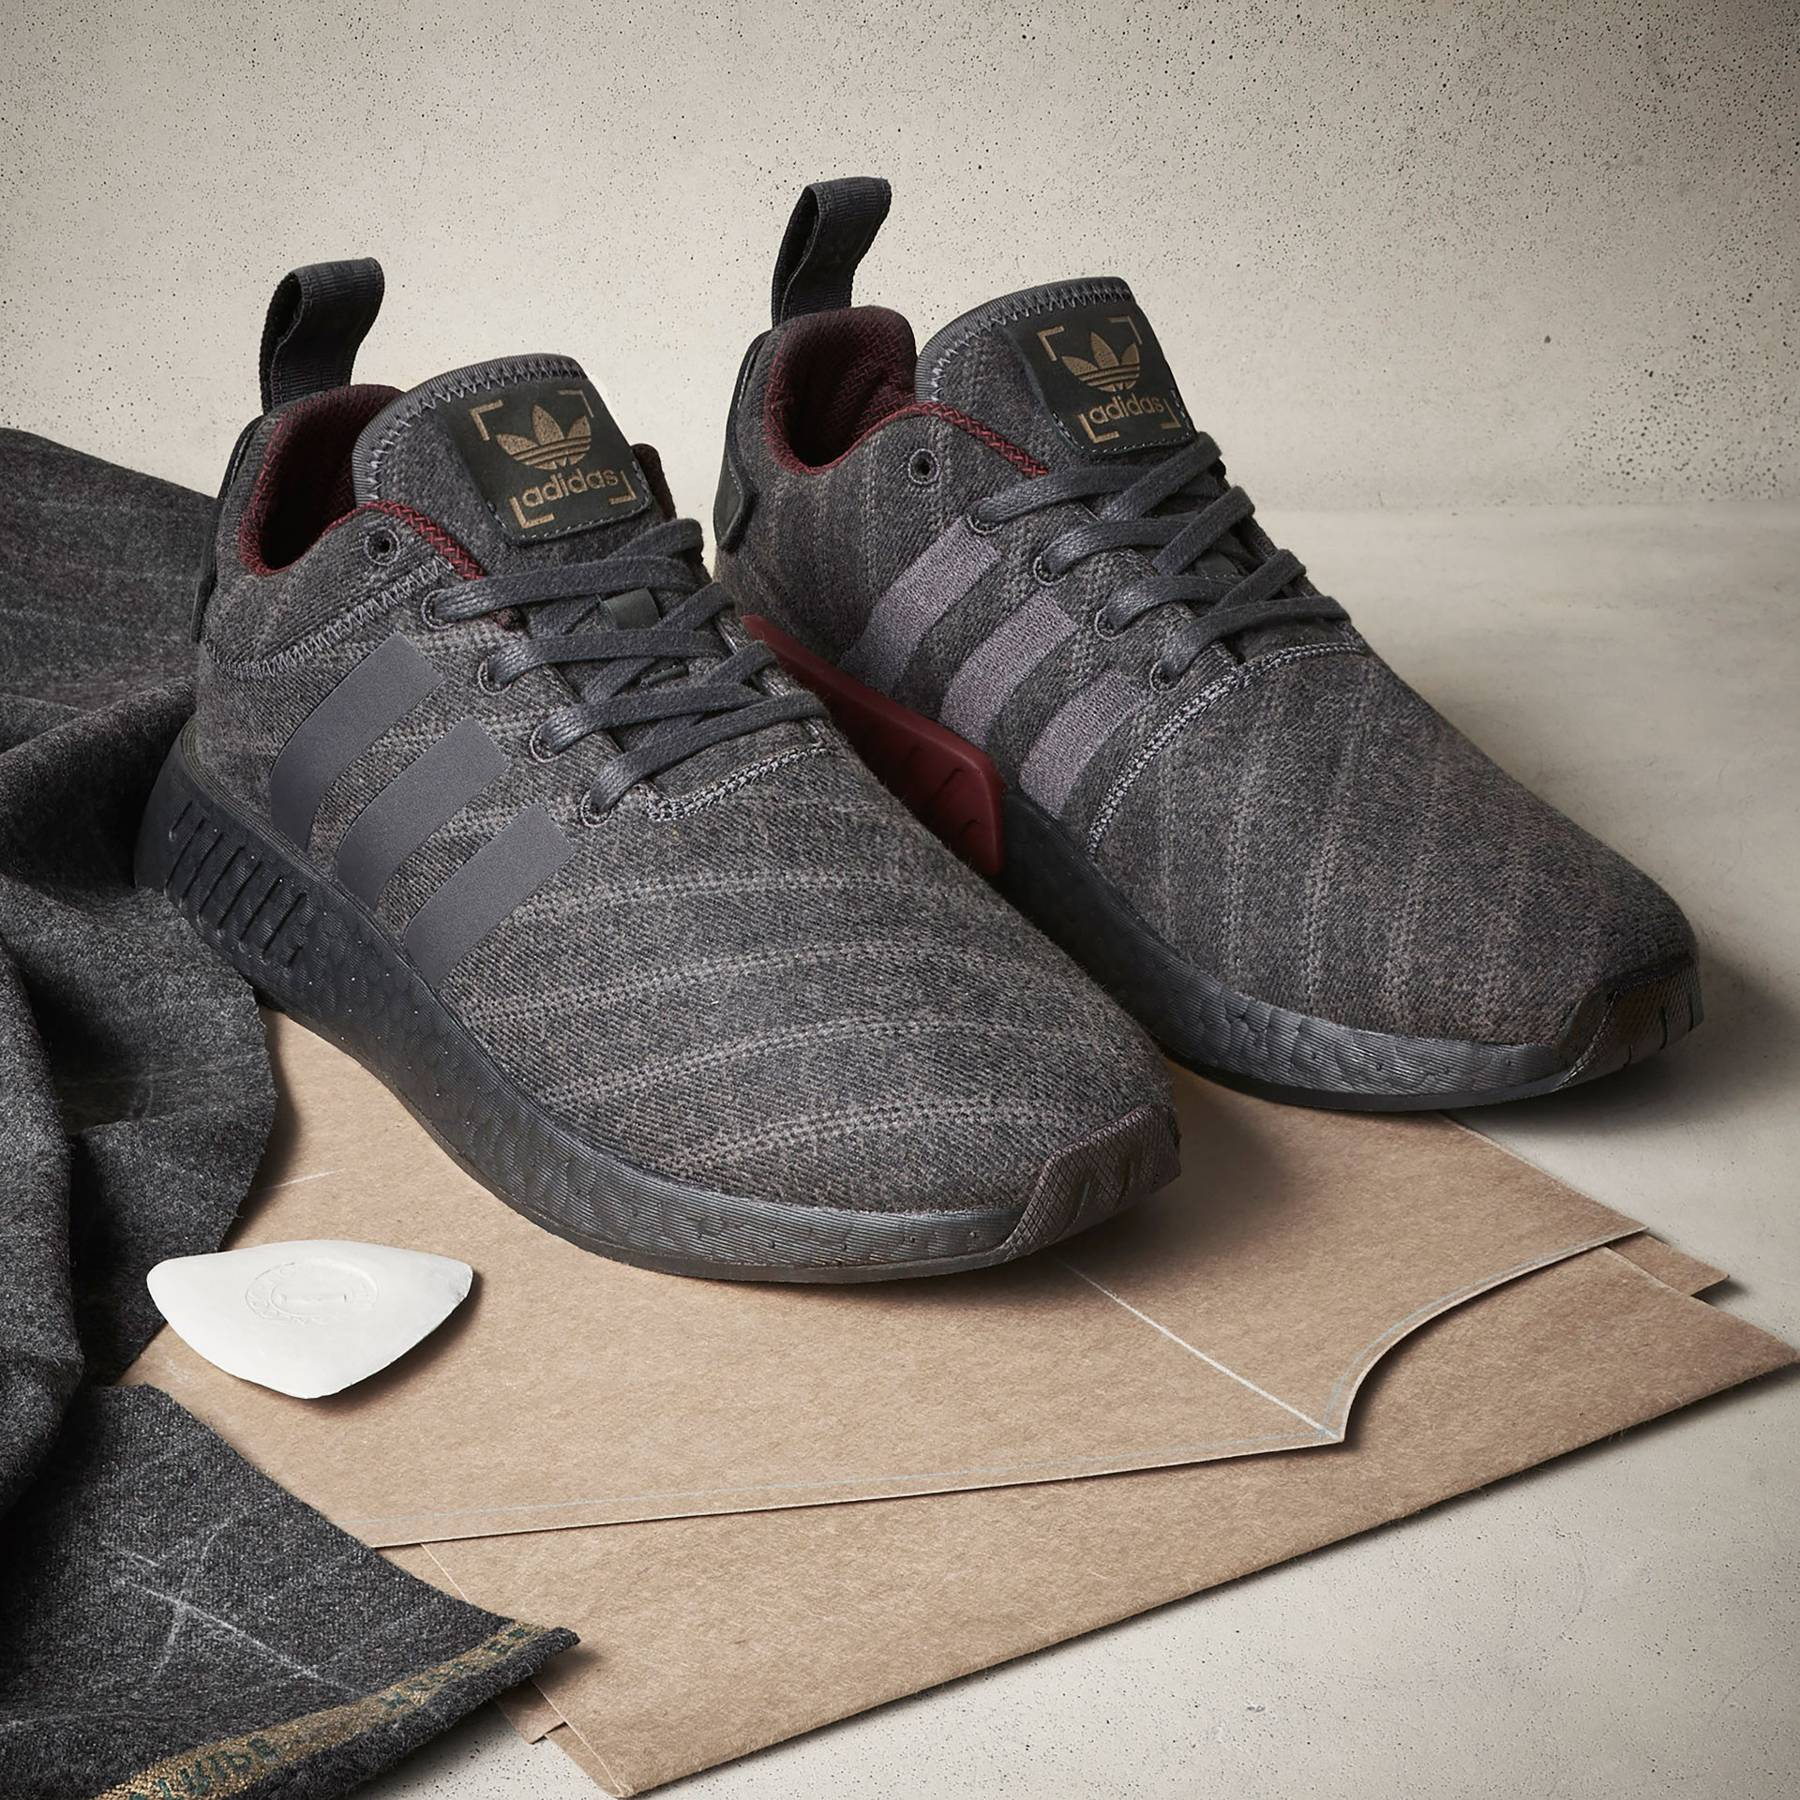 933304162 Adidas Originals x Henry Poole  Trainers with the Savile Row treatment